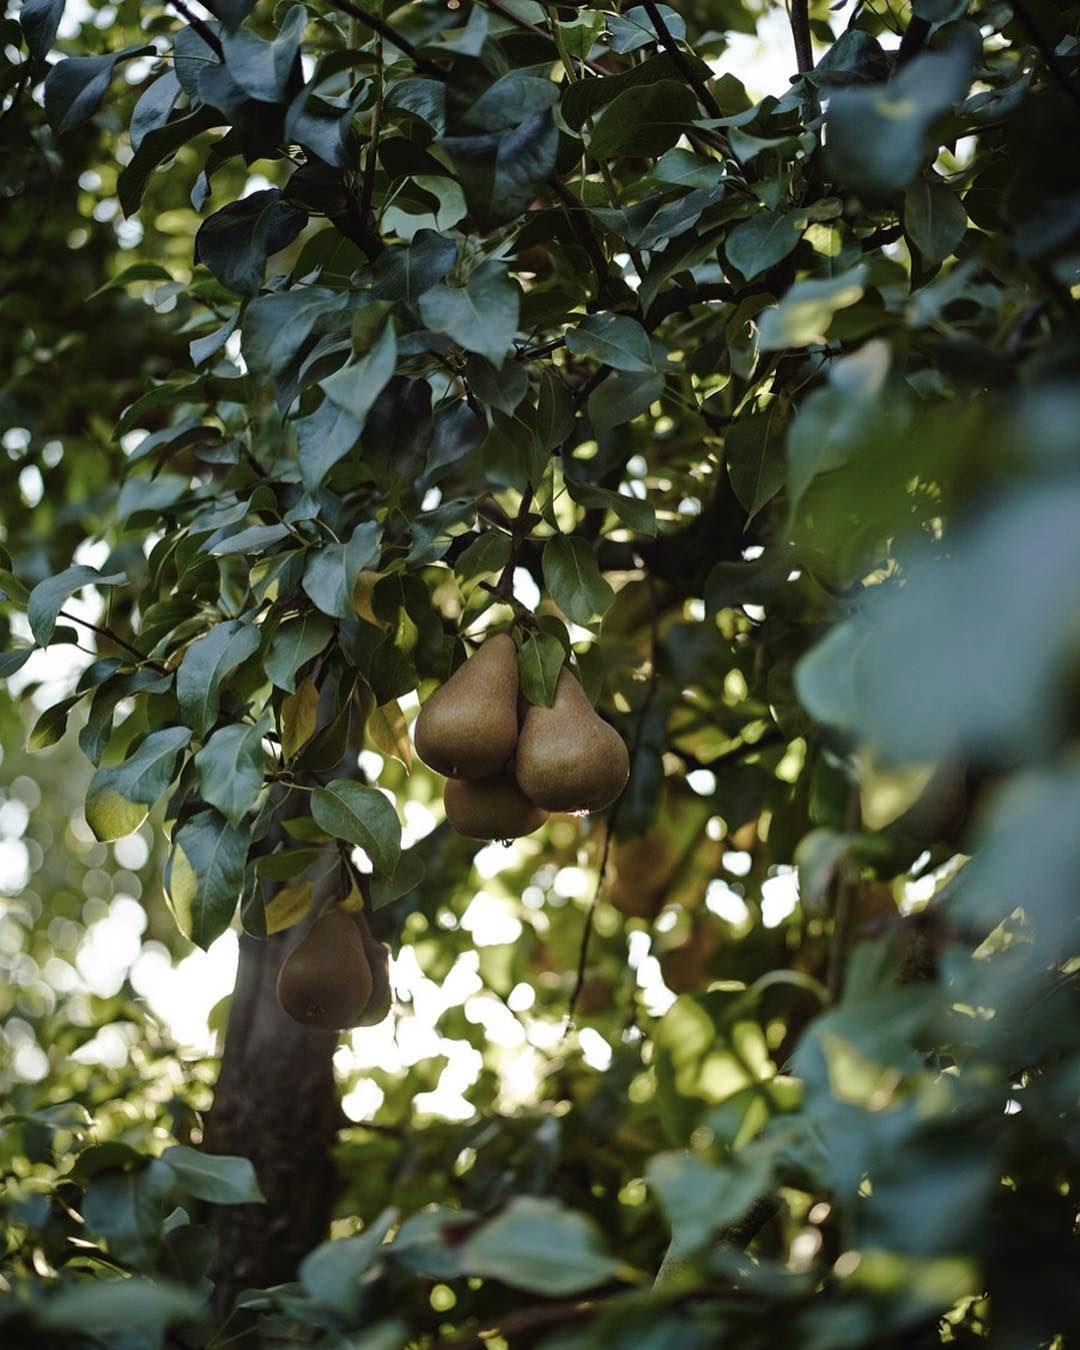 via @cal_pear: Did you know that some of the trees from which California pears are harvested can be 100 years old (or older!)?